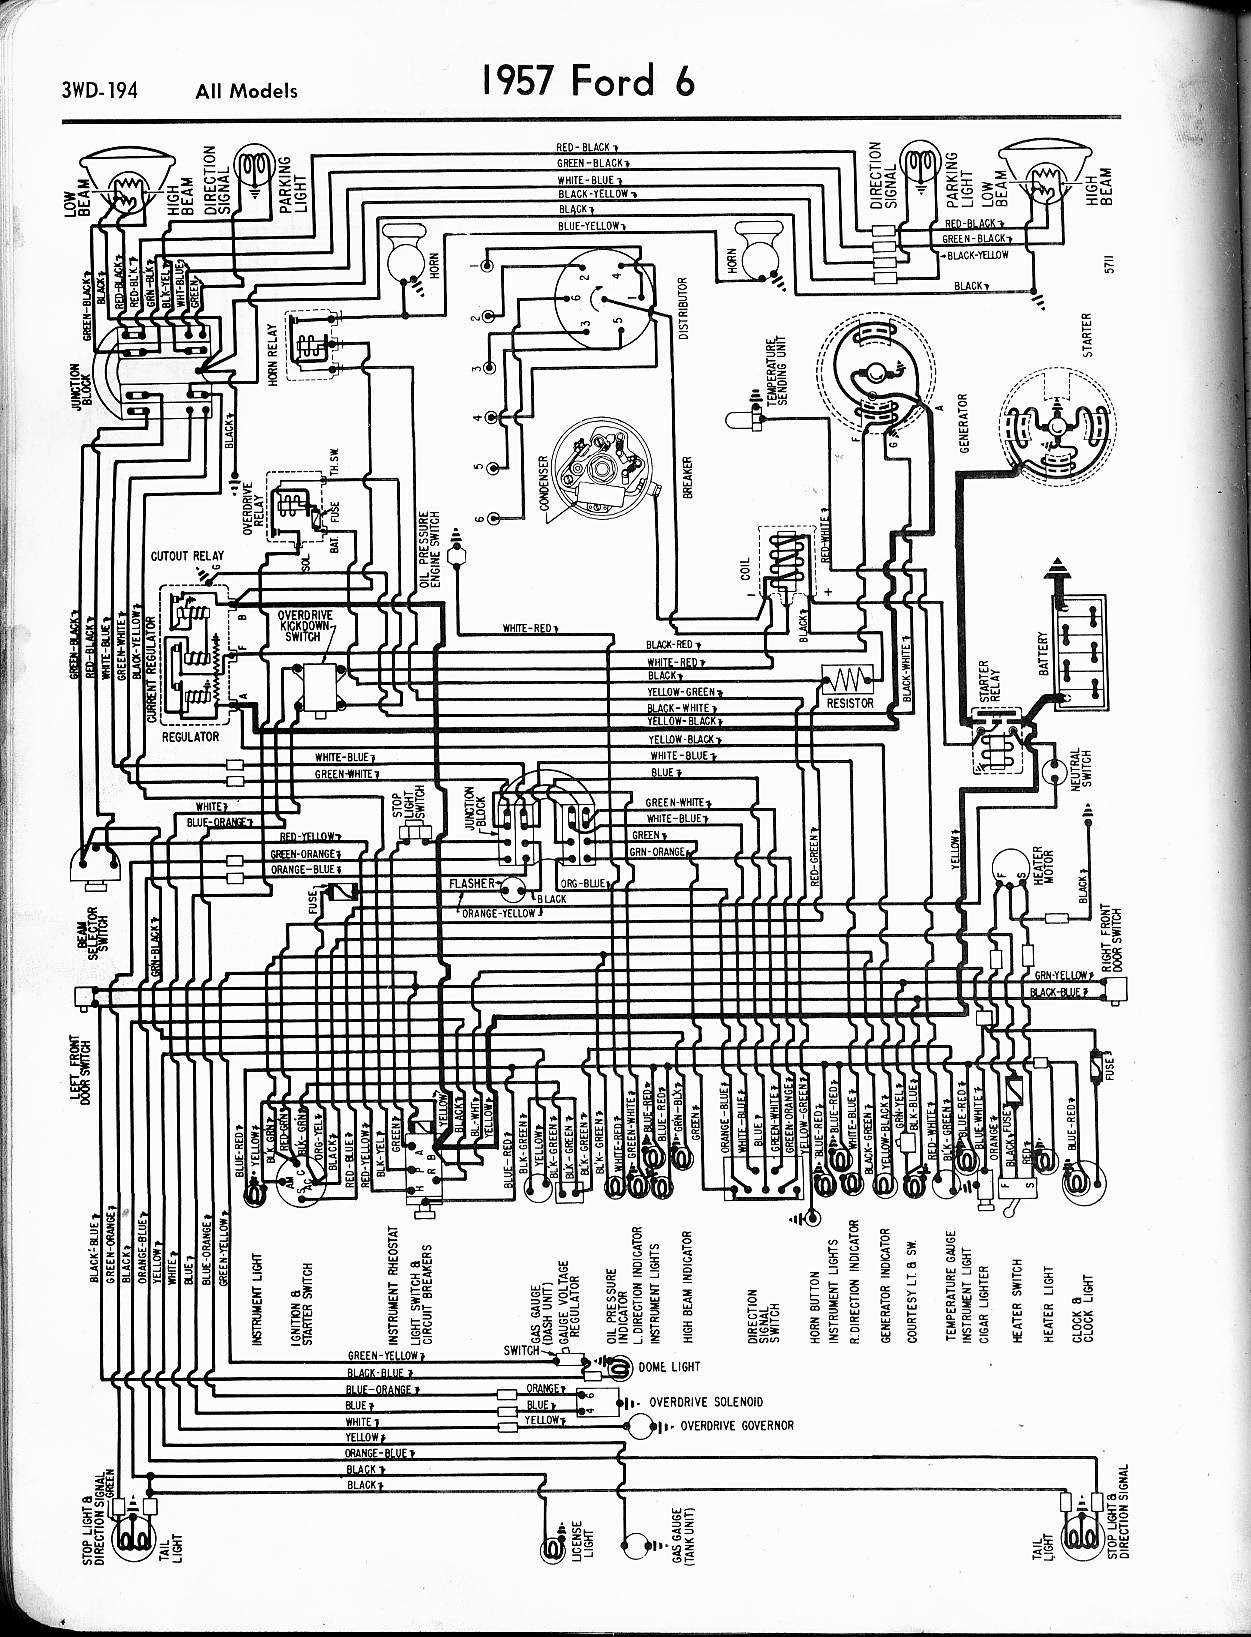 F700 429 Fuel Pump Wiring Diagram International 424 Wiring Diagram Begeboy Wiring Diagram Source